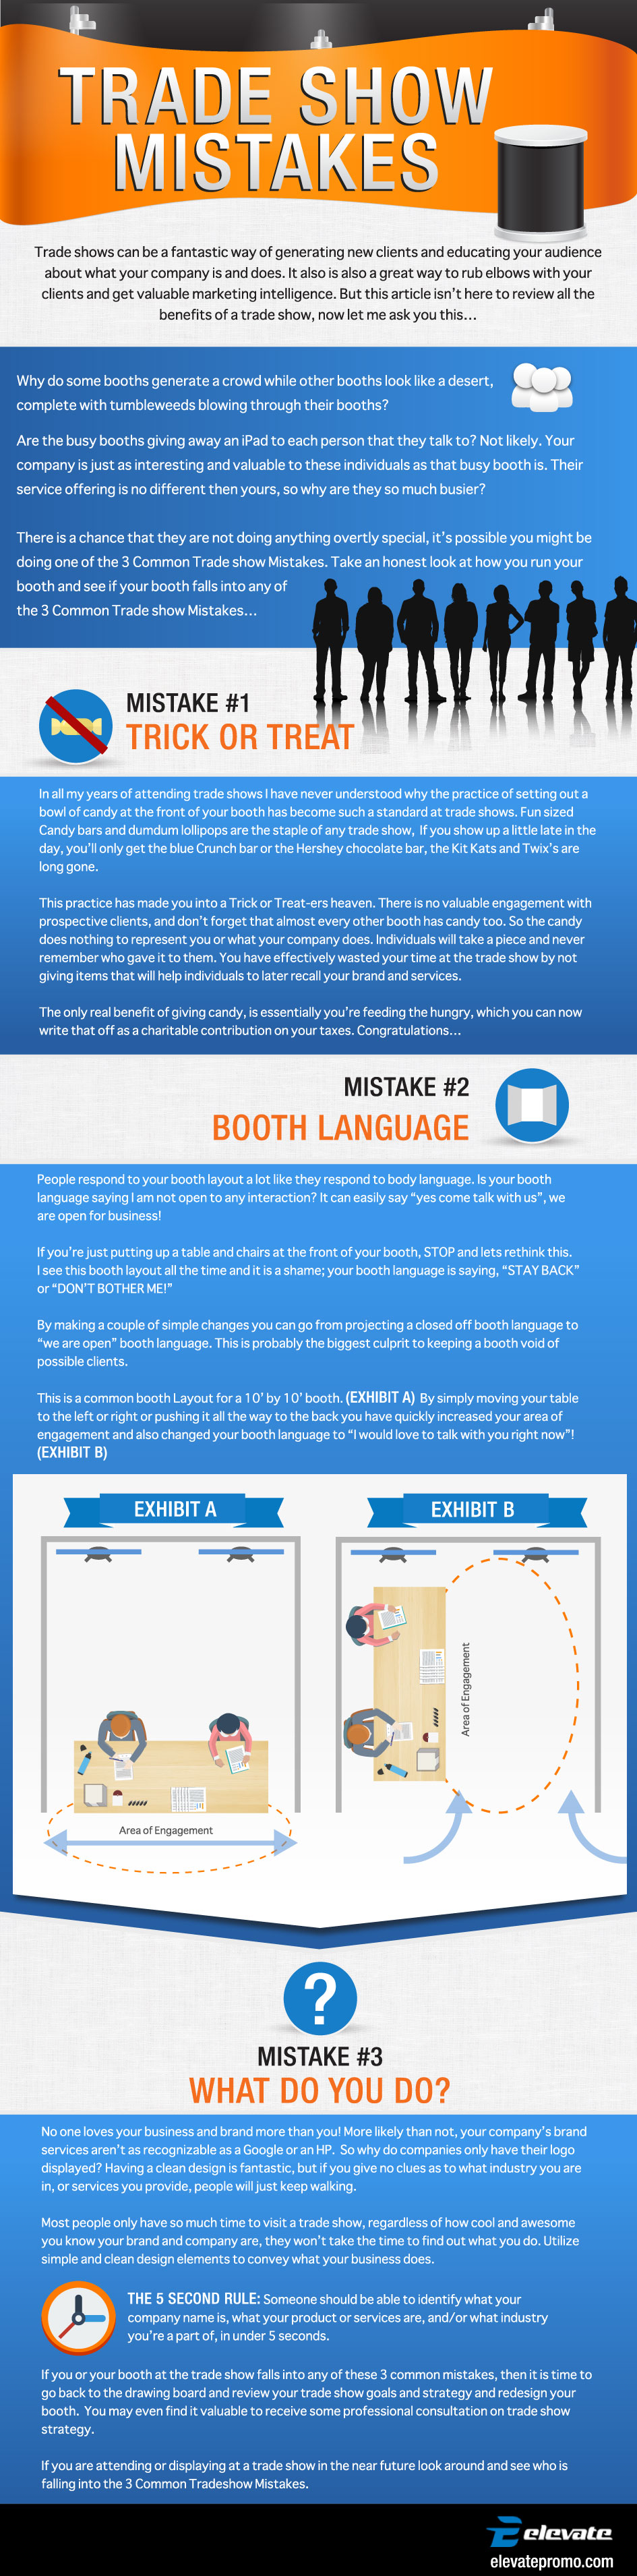 Trade Show Mistakes Infographic